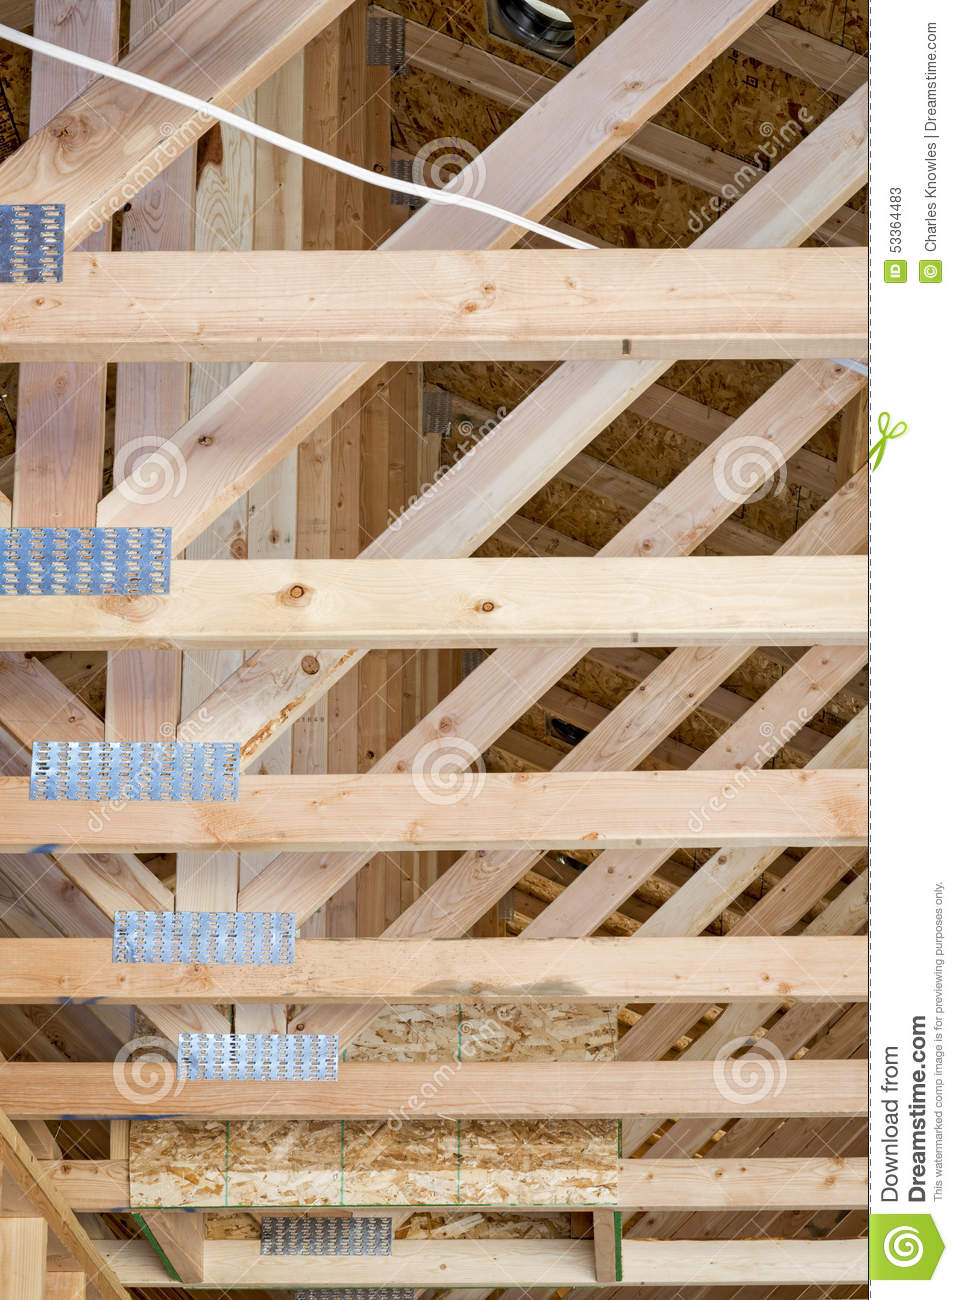 New Home Construction Roof Joists Stock Image Image Of Rough Particleboard 53364483